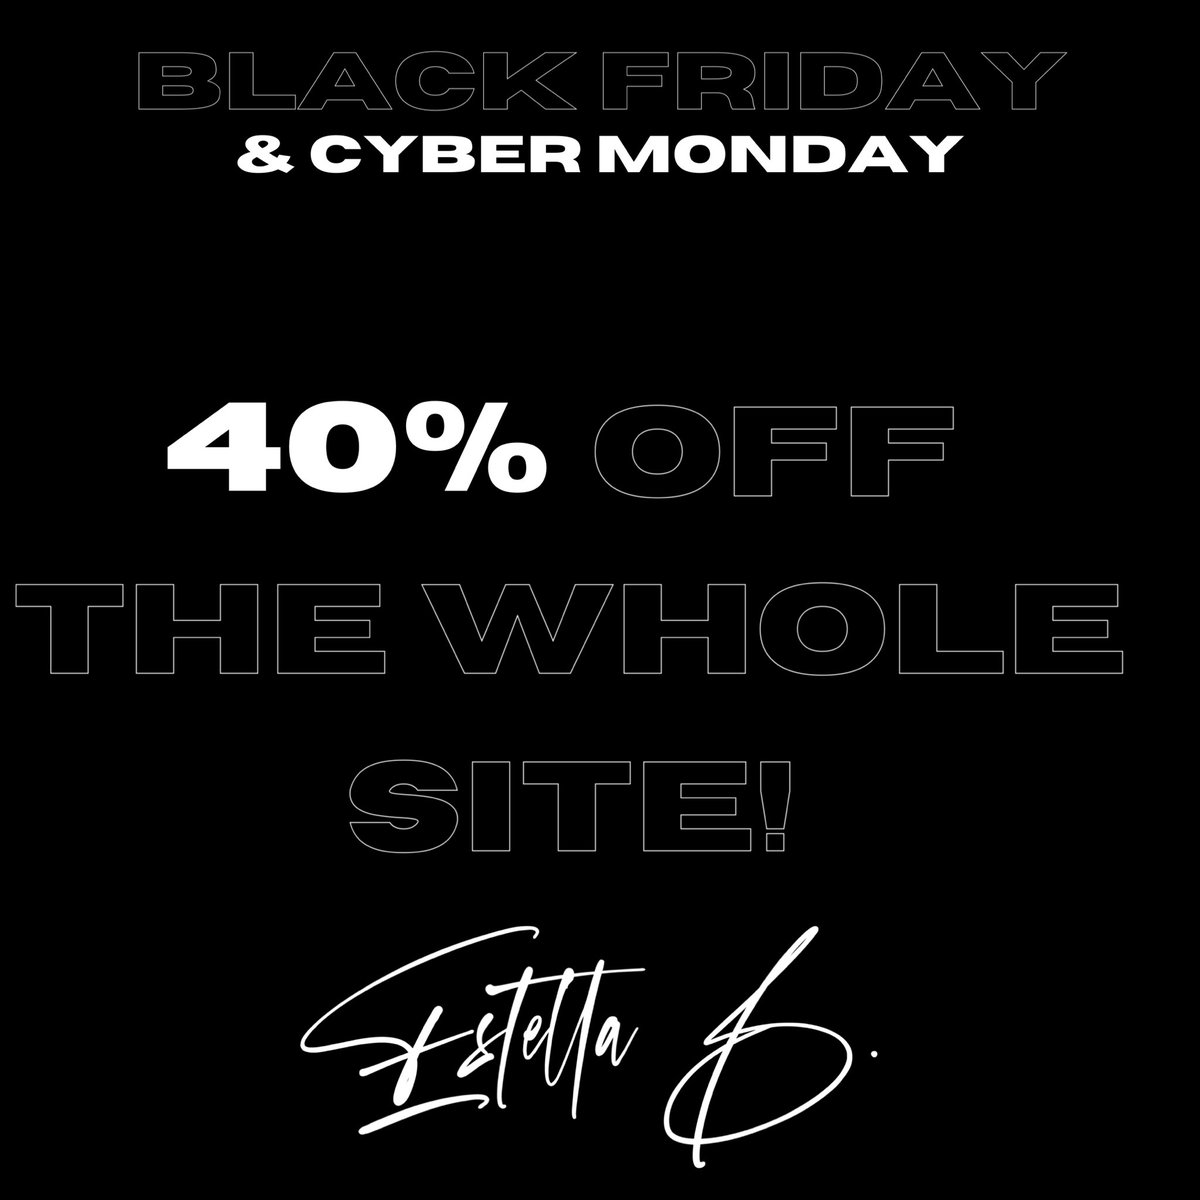 40% off sale ends tonight at midnight! #CyberMonday #SmallBusinesses @shopestellab  🖤